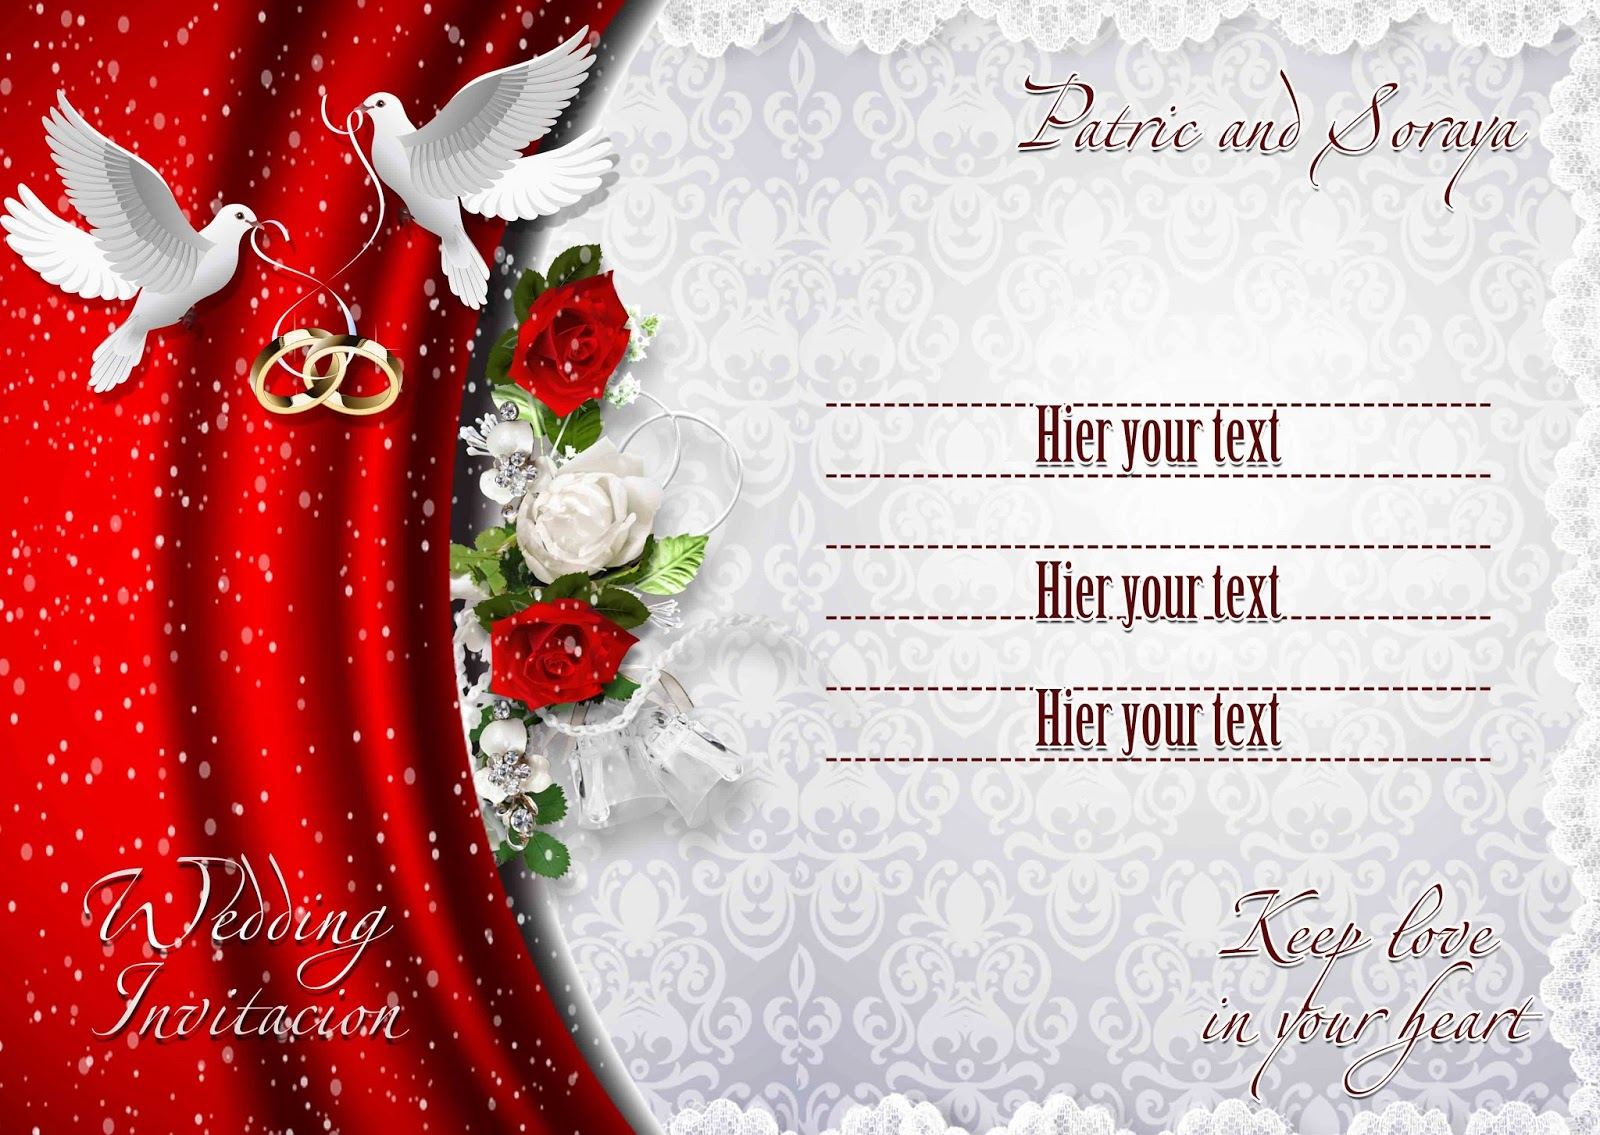 wedding invitation design templates psd free download furniture